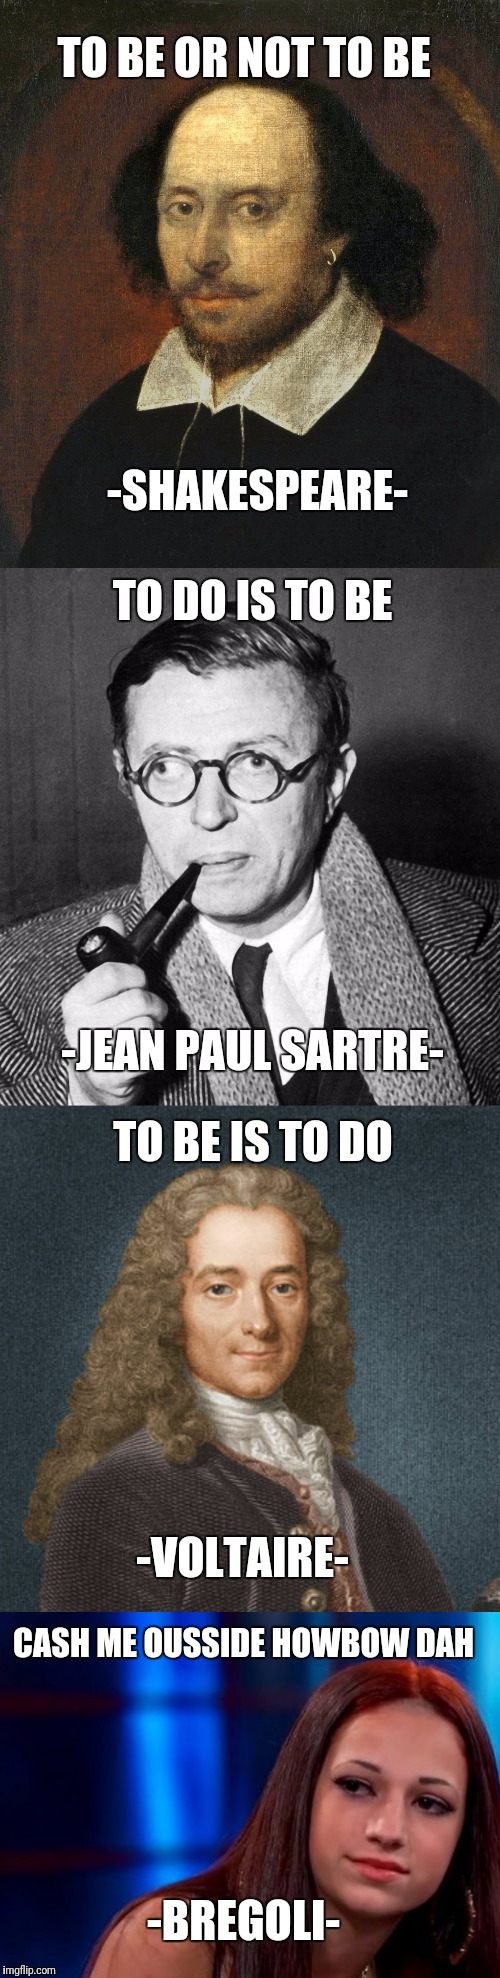 Sayings That Made People's Legacies. So Much Intelligence In One Meme. | TO BE OR NOT TO BE -SHAKESPEARE- TO DO IS TO BE -JEAN PAUL SARTRE- TO BE IS TO DO -VOLTAIRE- CASH ME OUSSIDE HOWBOW DAH -BREGOLI- | image tagged in funny,memes,shakespeare,jean paul sartre,voltaire,cash me ousside how bow dah | made w/ Imgflip meme maker